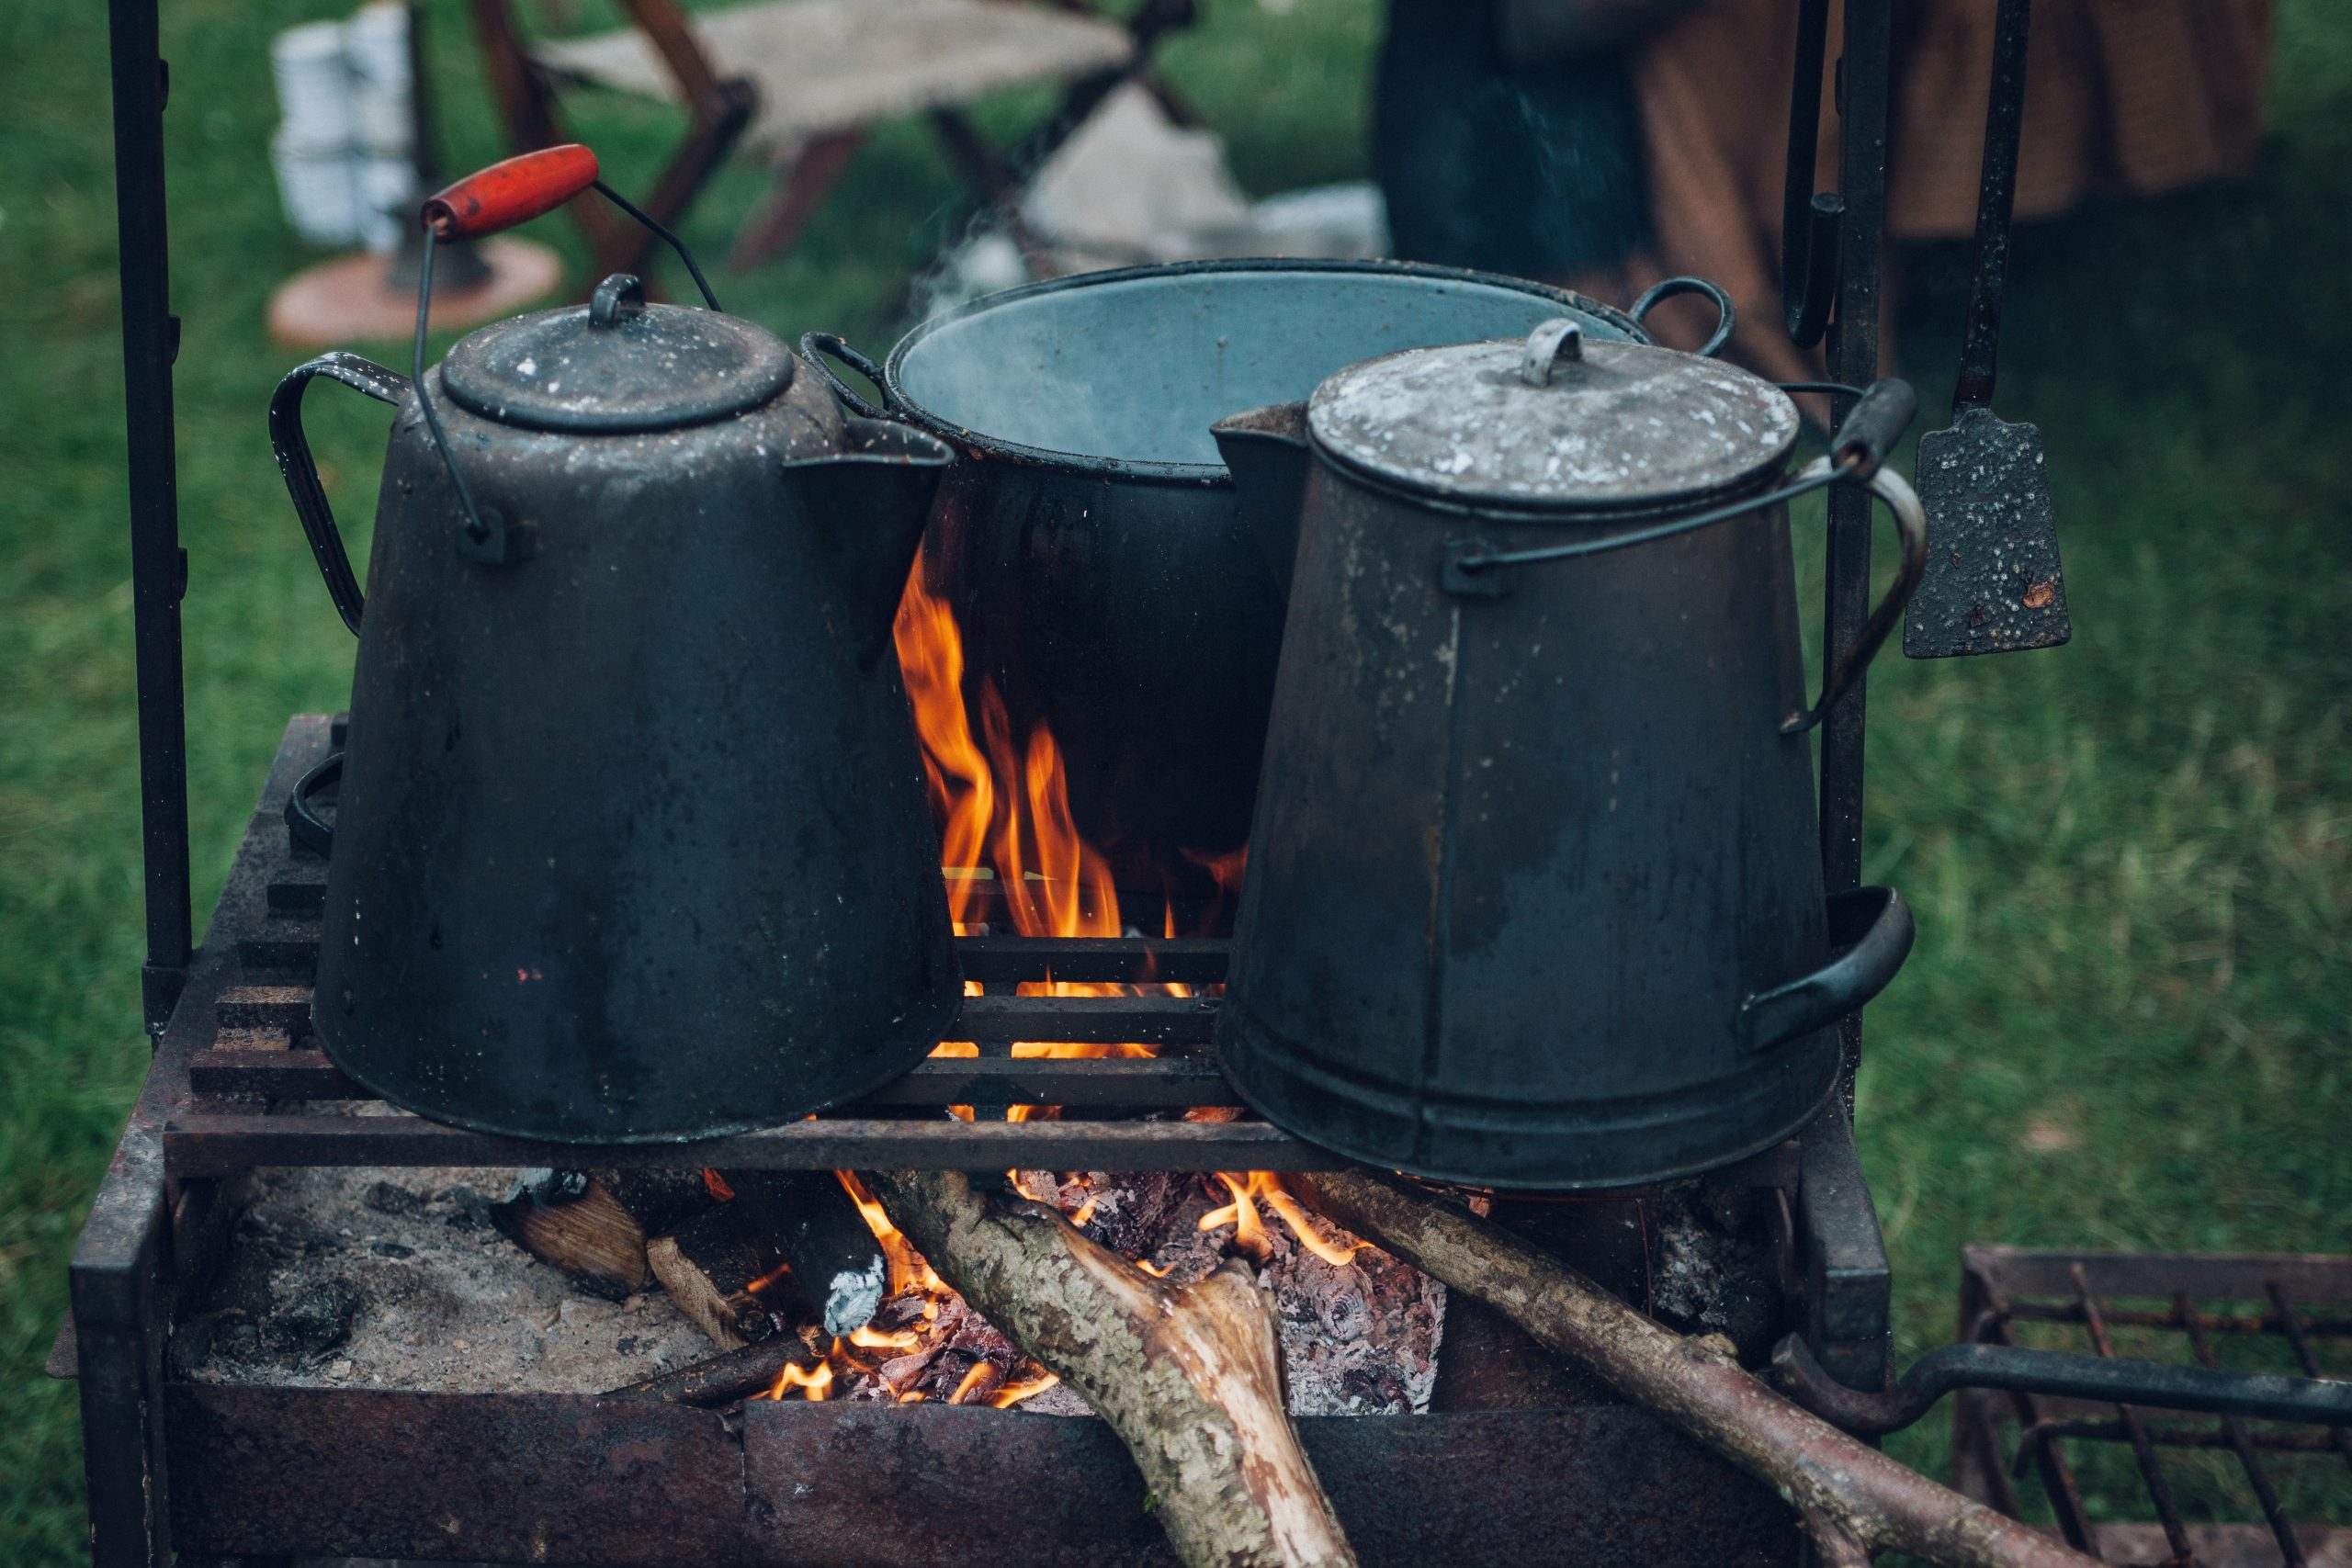 Percolators and dutch oven over the fire